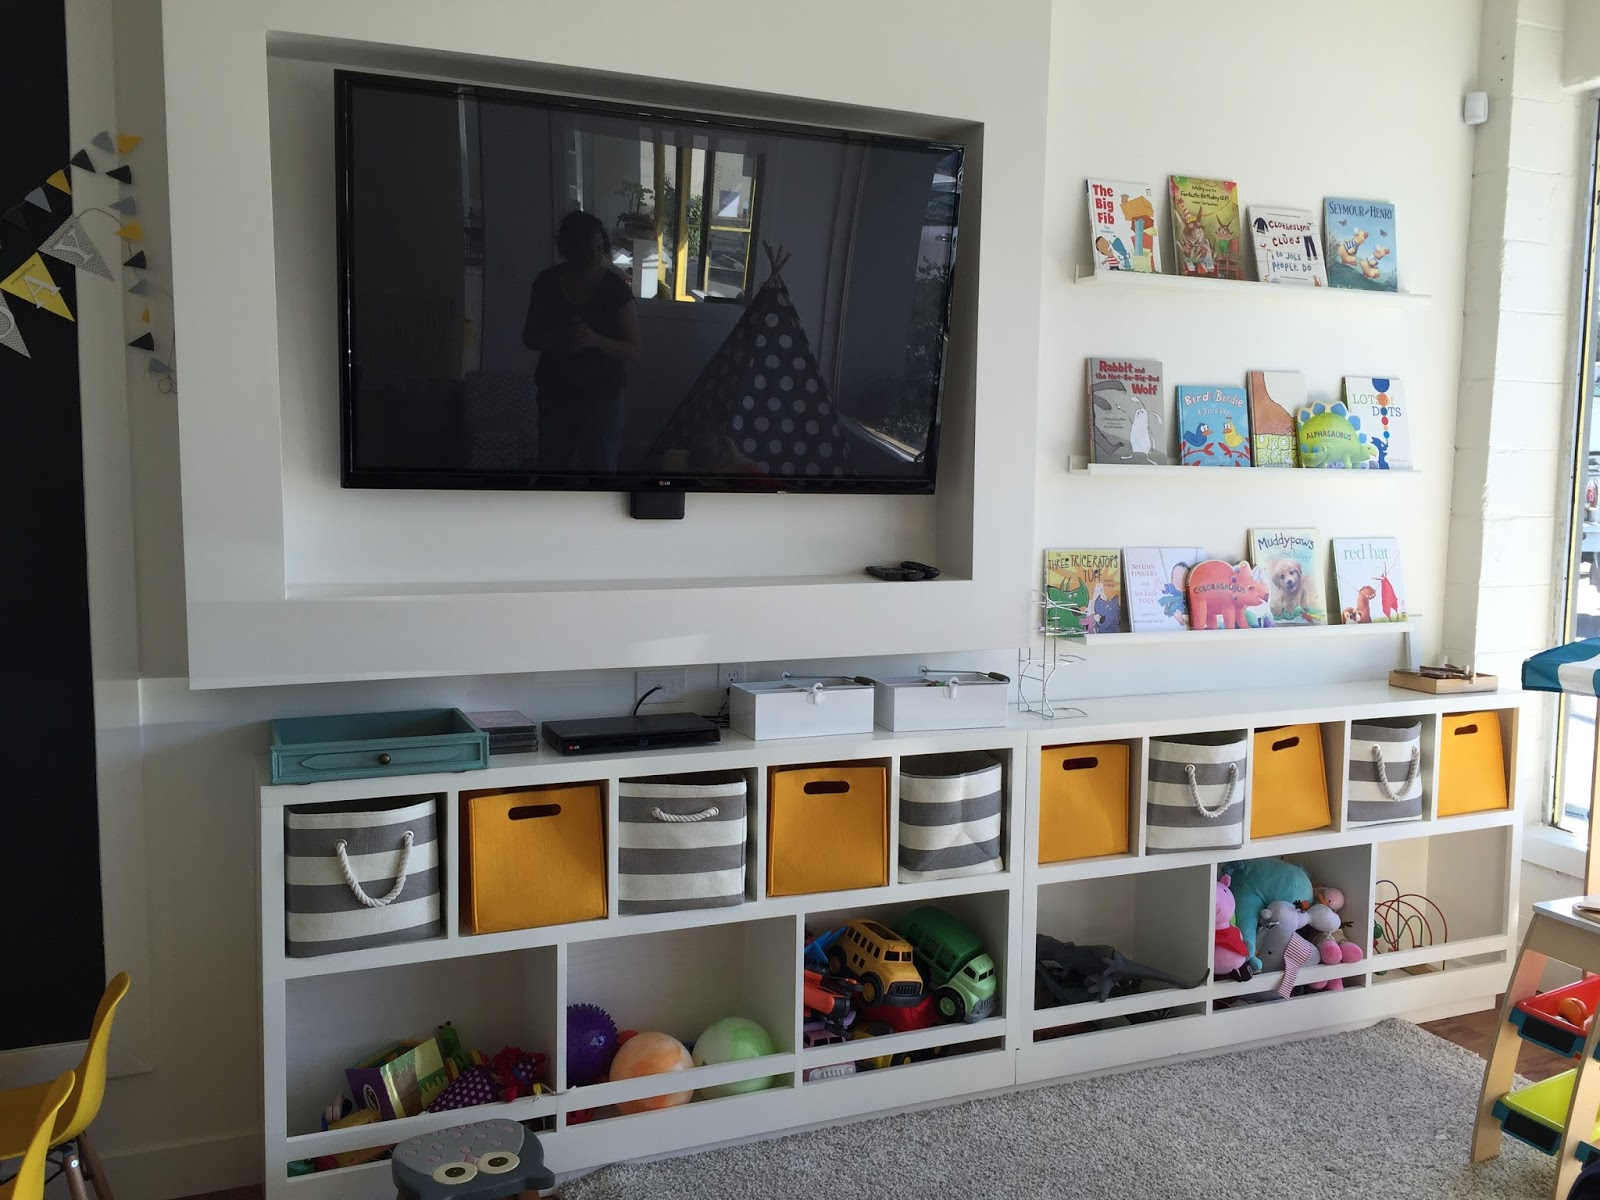 Silicon Valley Toddler And Beyond Cafe Playroom Review